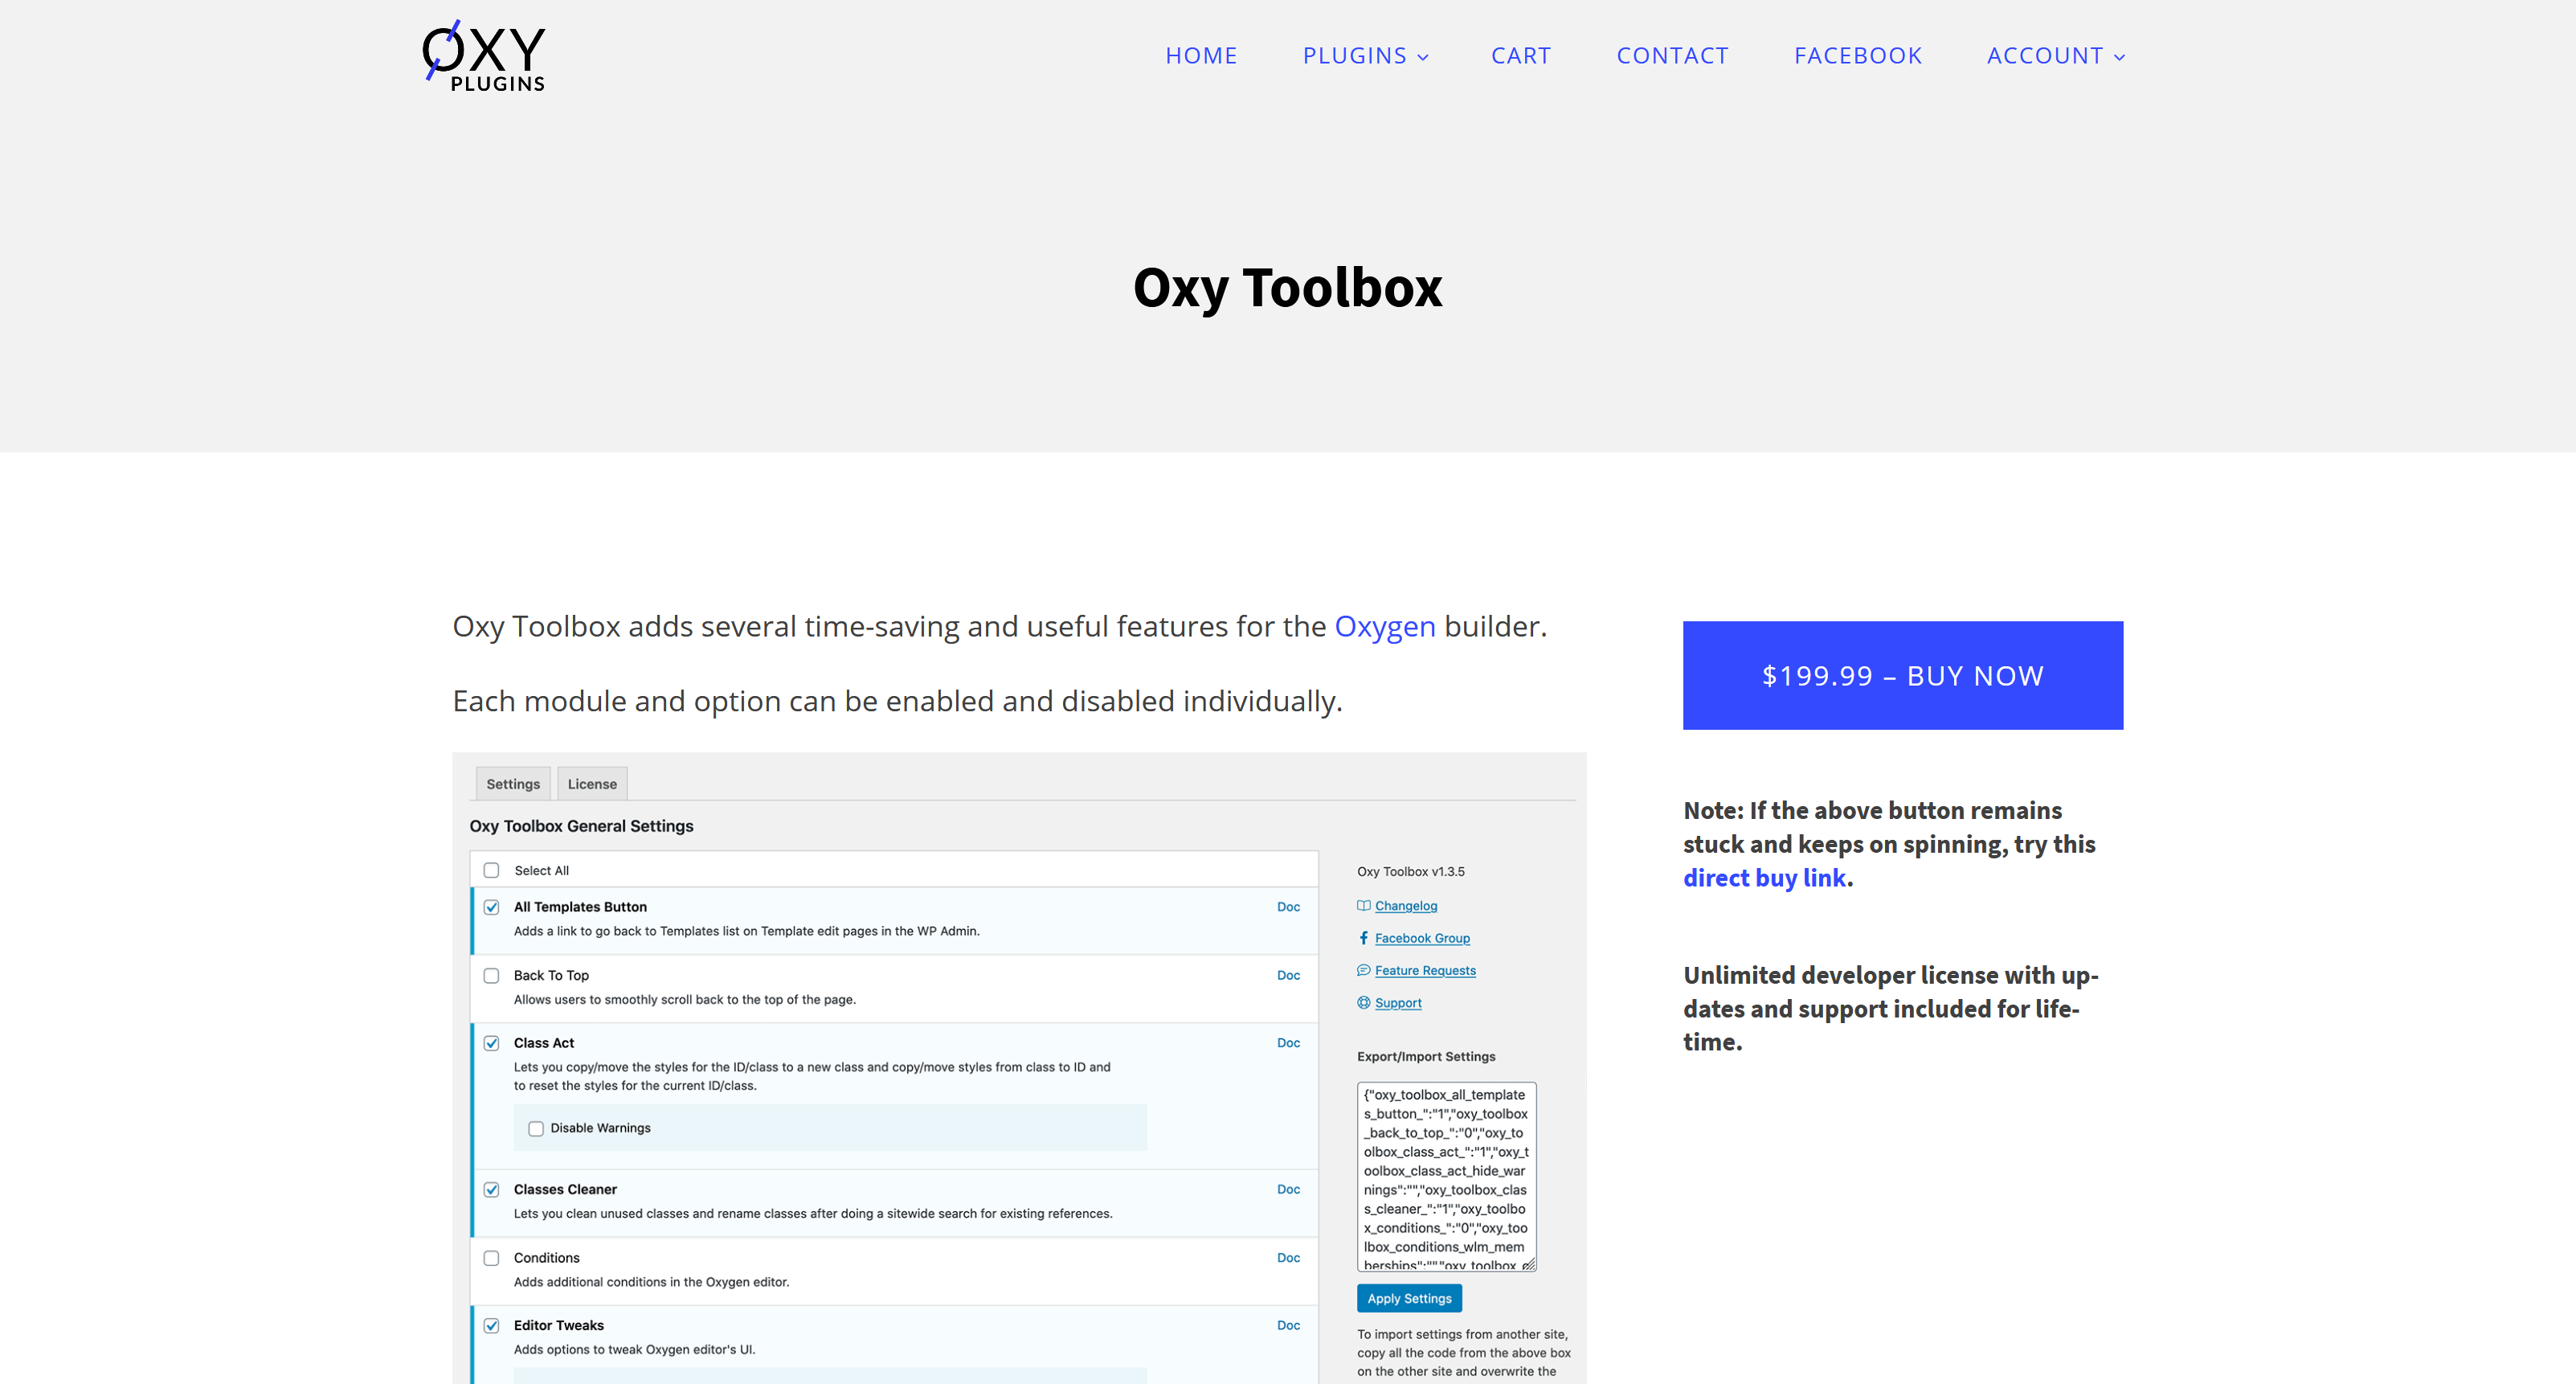 Oxy Toolbox 1.3.9 – Oxy Toolbox adds several time-saving and useful features for the Oxygen builder